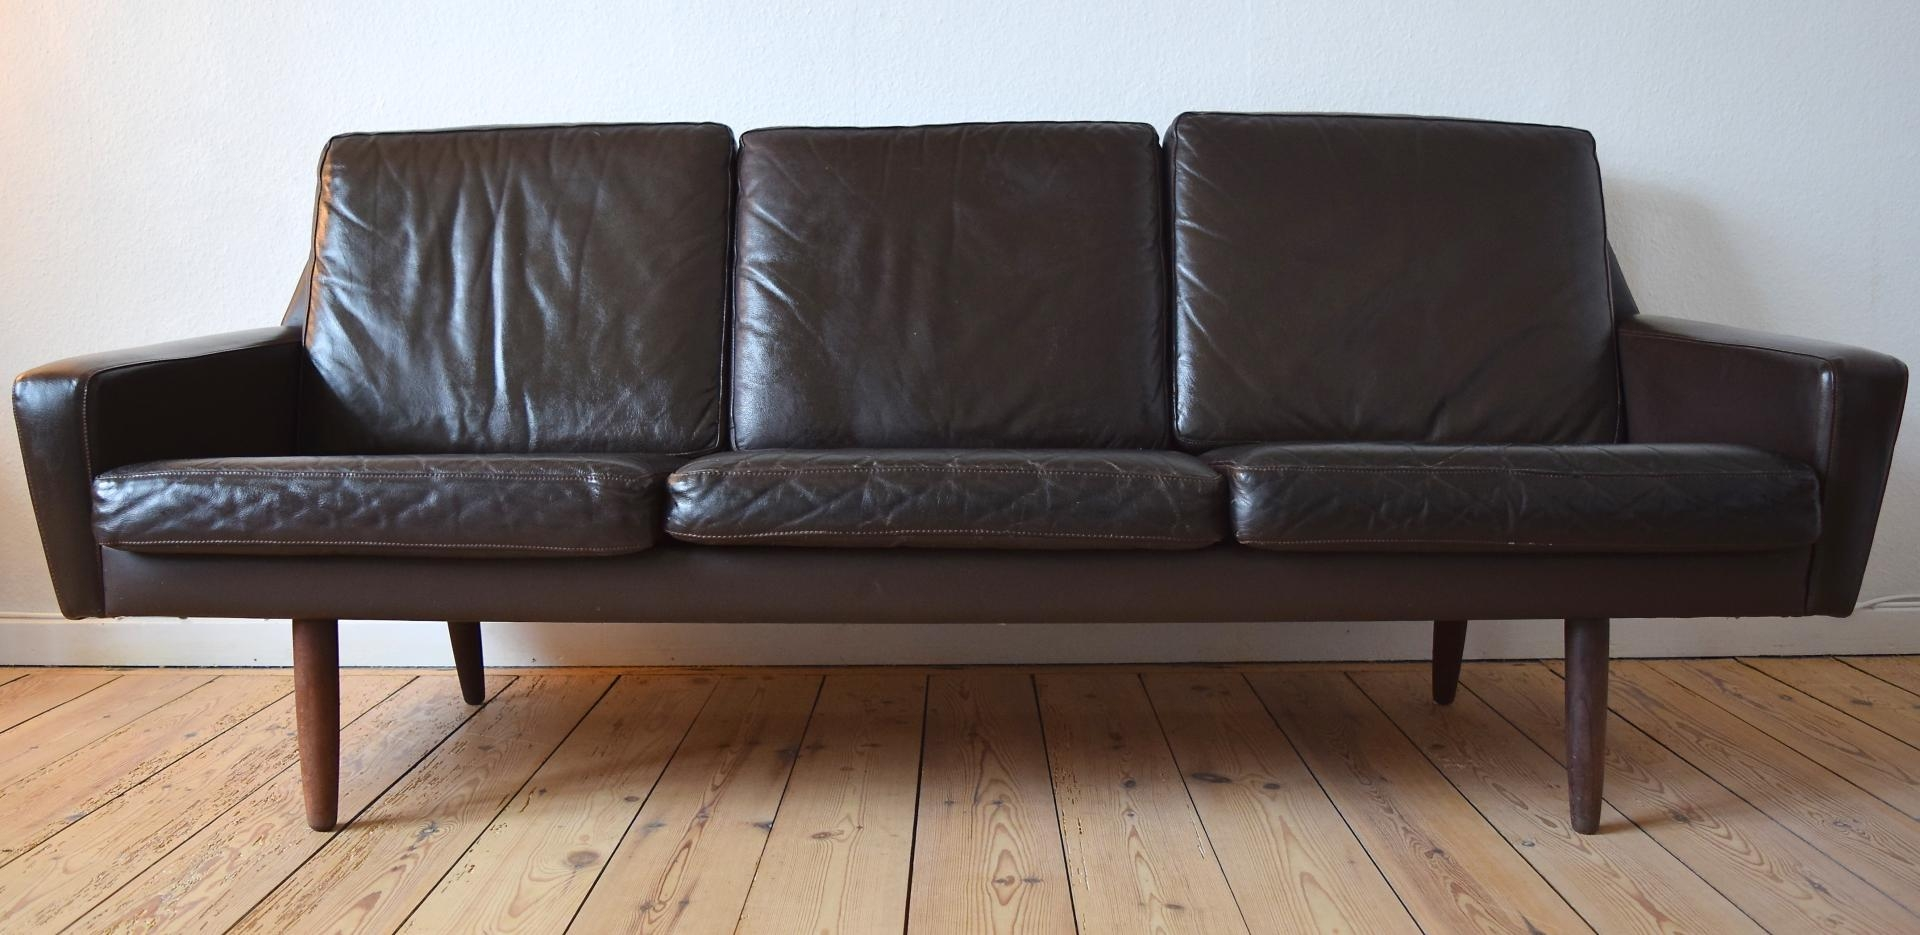 Danish Vintage Leather Sofa With Teak Legs, 1960S For Sale At Pamono With Danish Leather Sofas (Image 14 of 20)